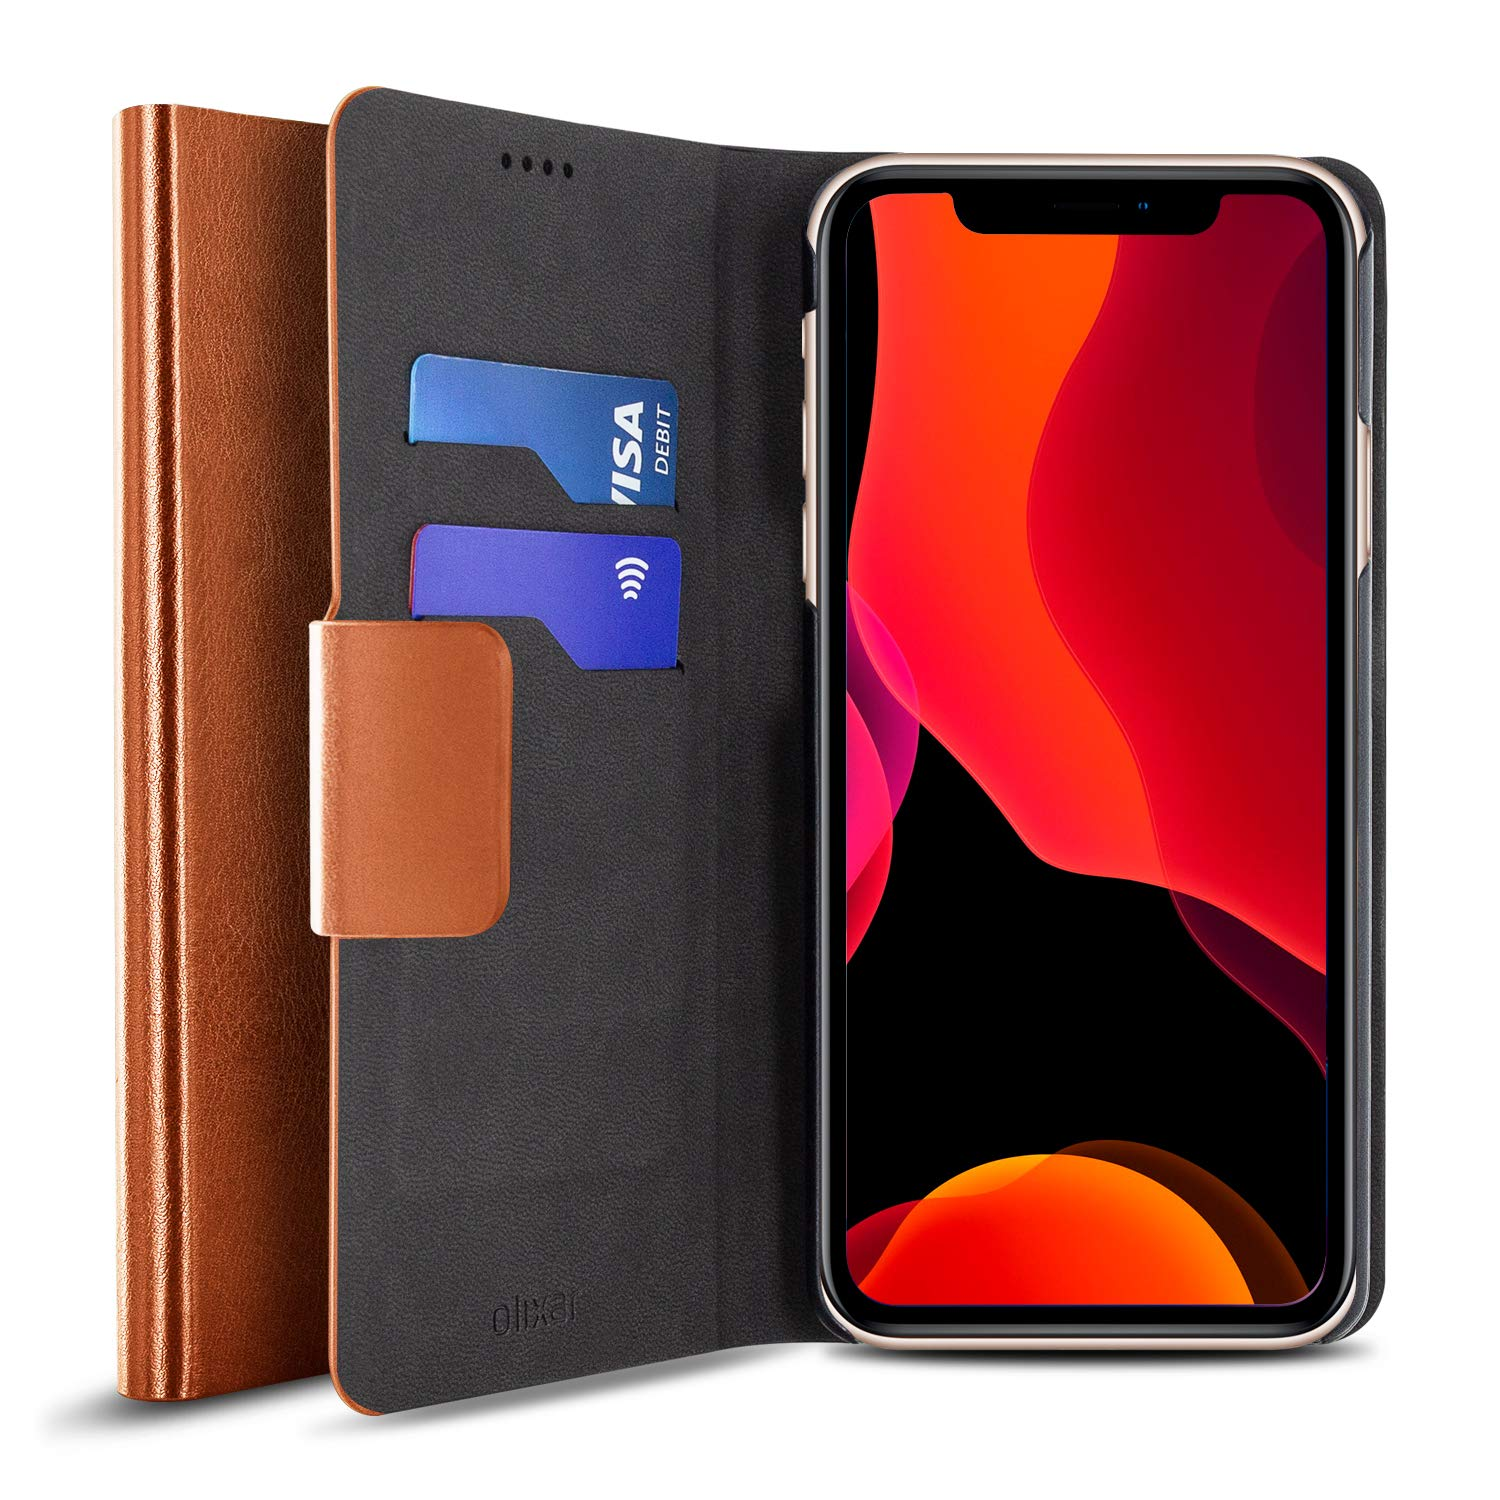 Olixar for iPhone 11 Pro Wallet Case - PU Faux Leather/Leather Style Flip Cover - Credit Card Storage - Built in Kickstand - Wireless Charging Compatible - Brown